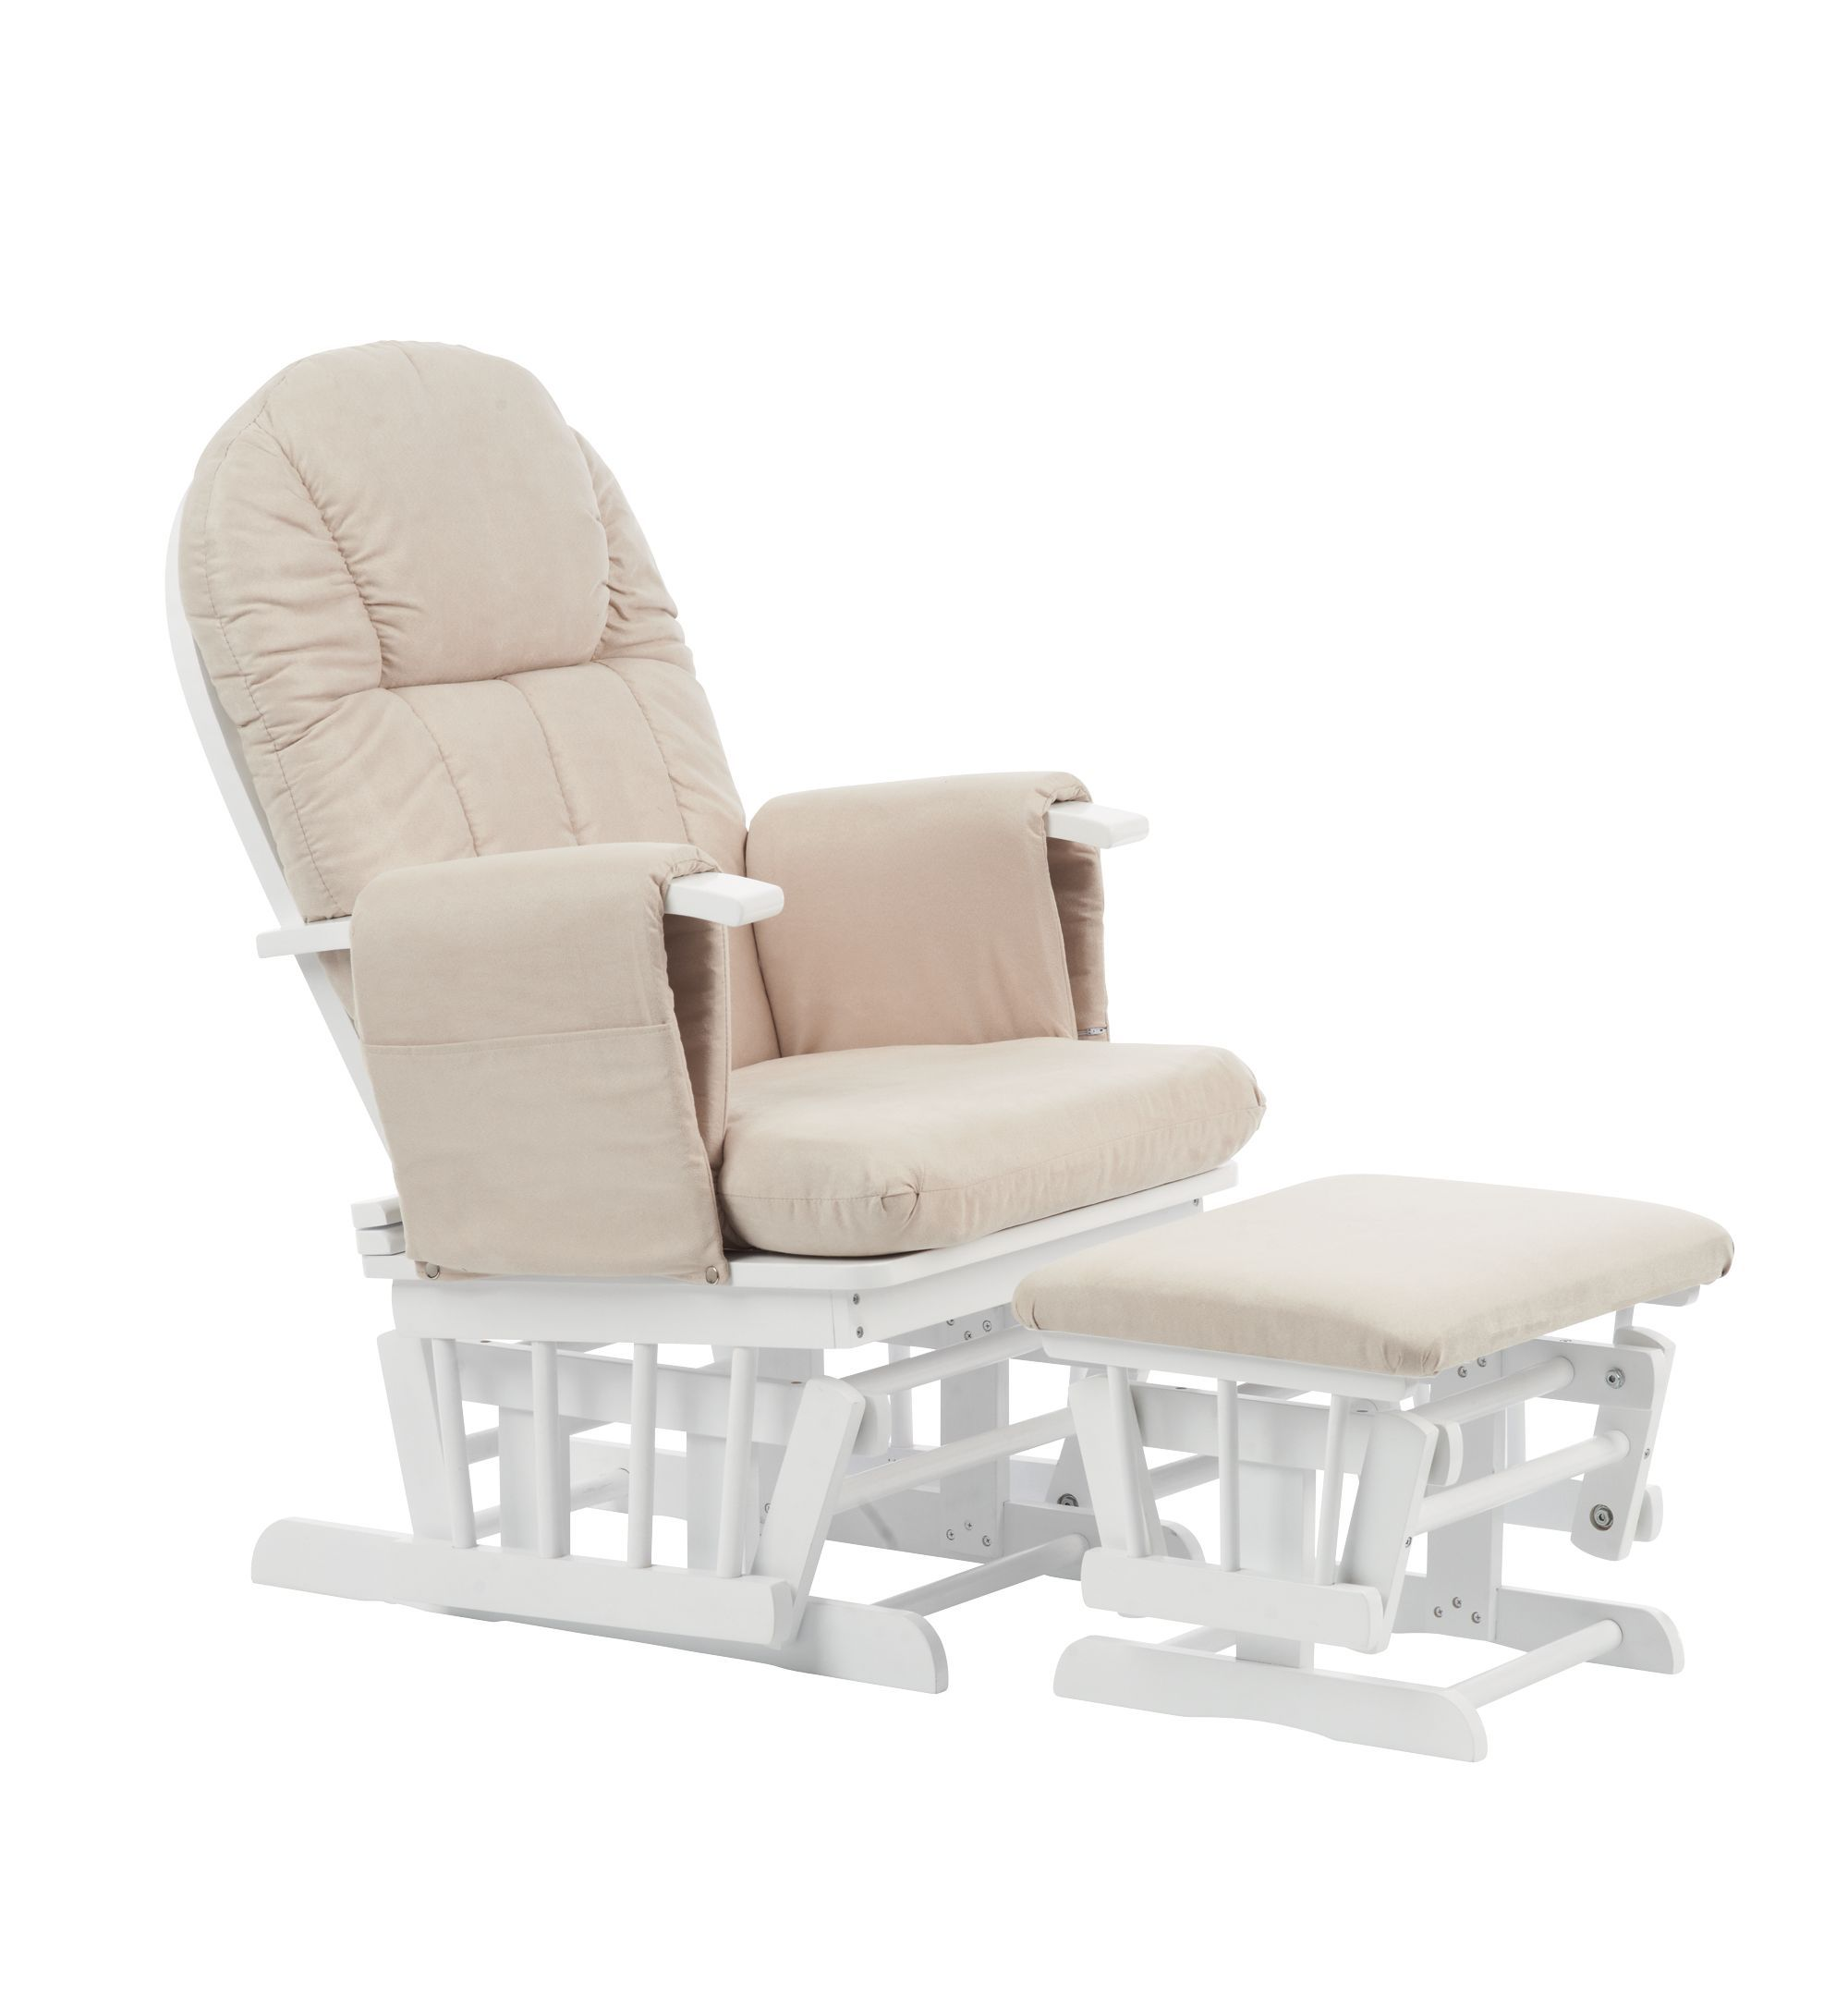 Sensational Mothercare Reclining Glider Chair White Baby Taylor Andrewgaddart Wooden Chair Designs For Living Room Andrewgaddartcom